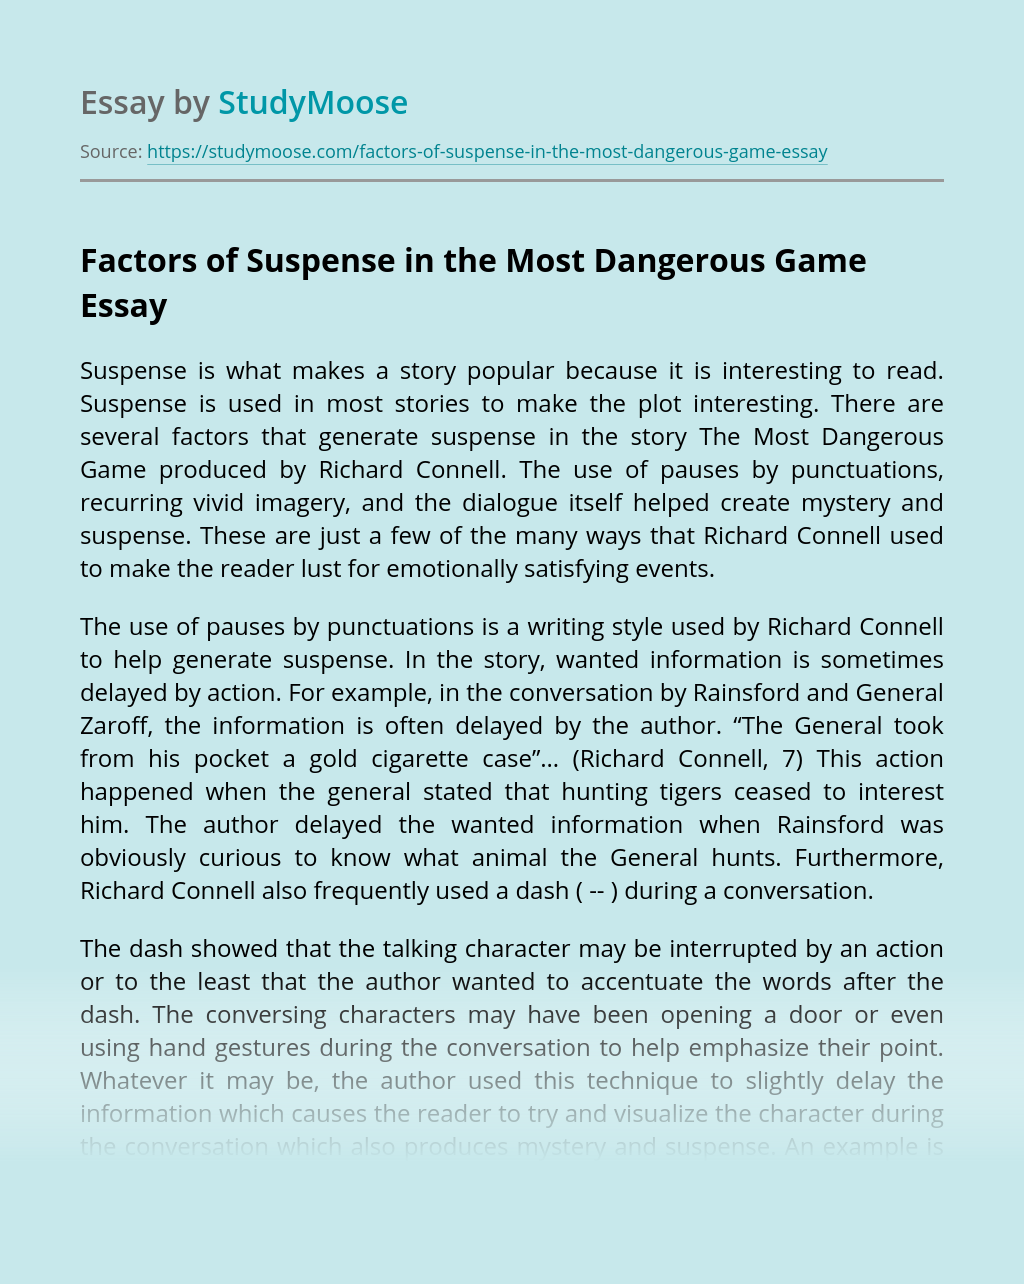 Factors of Suspense in the Most Dangerous Game